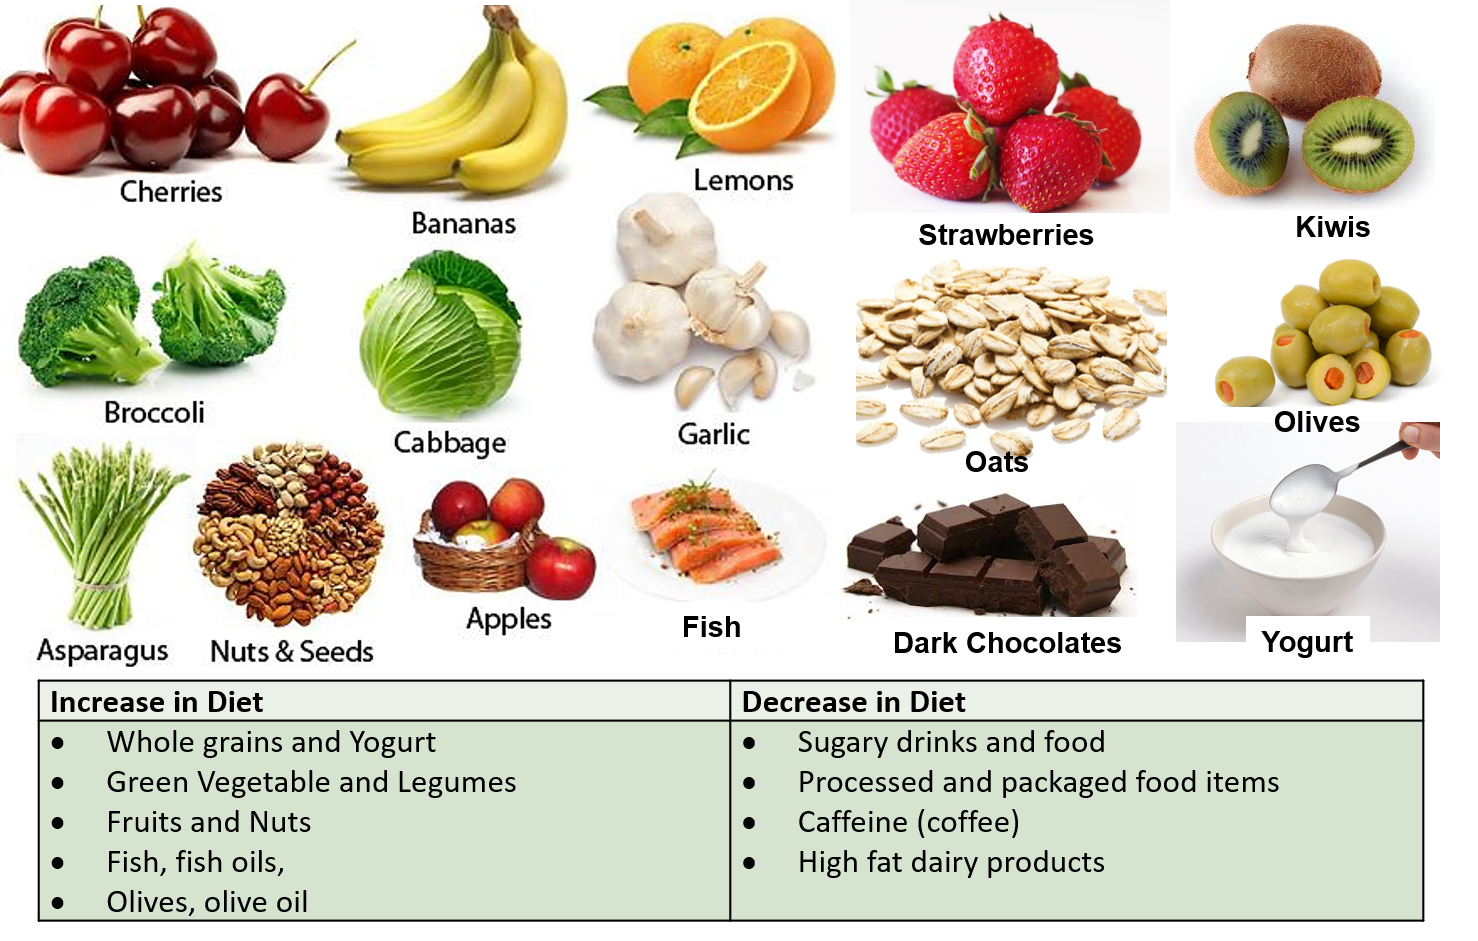 Food items for better mental health